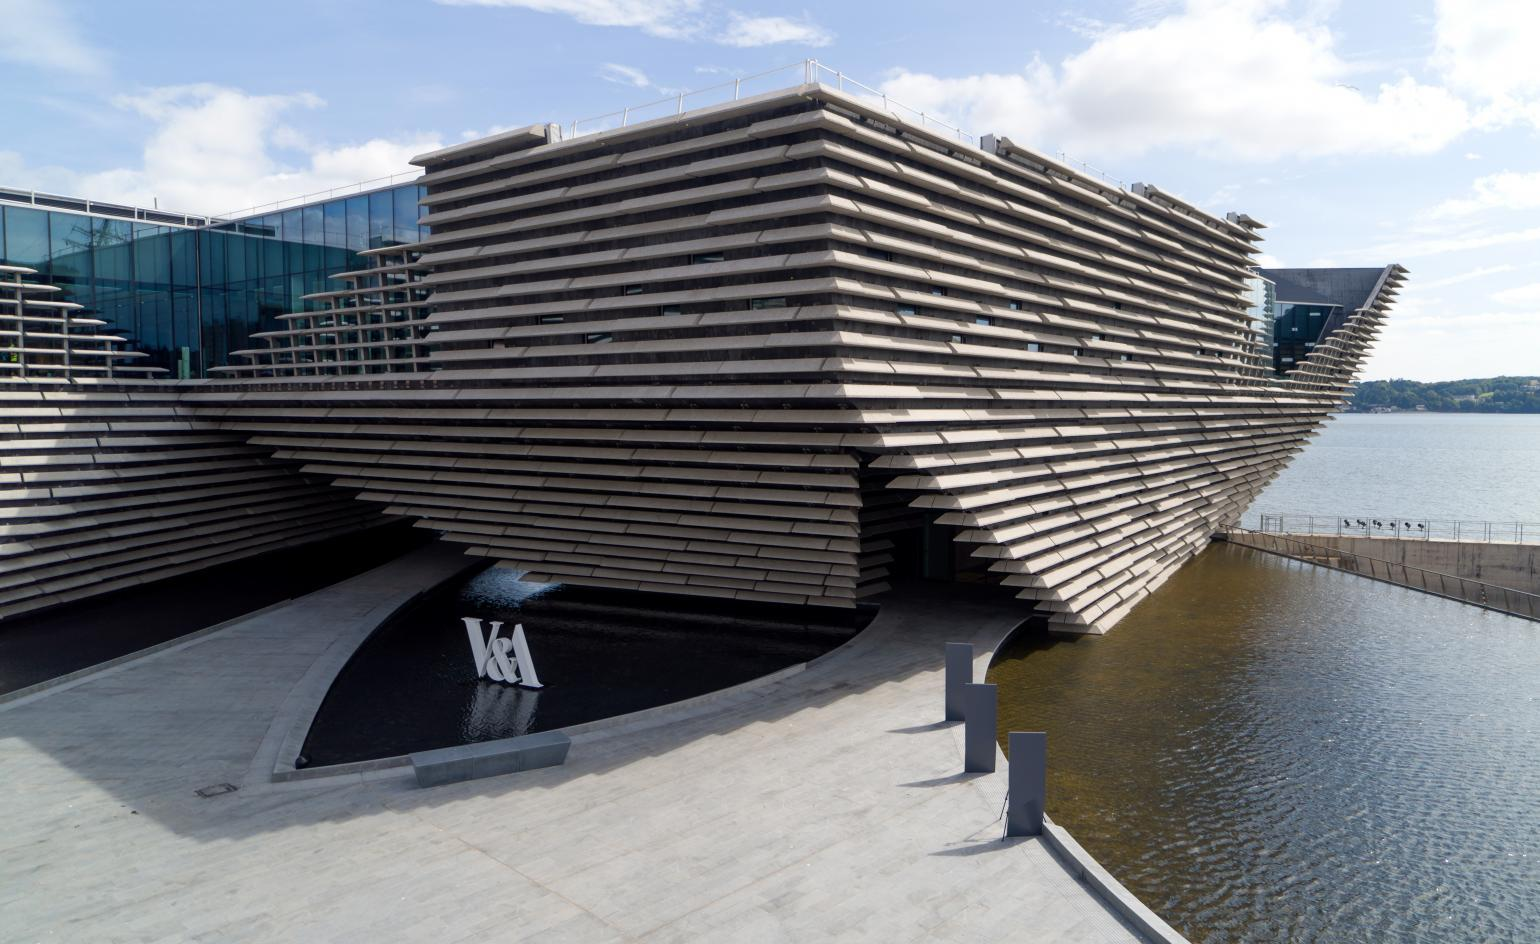 Kengo Kuma's V&A Dundee: Drone footage shows finished building ahead of opening